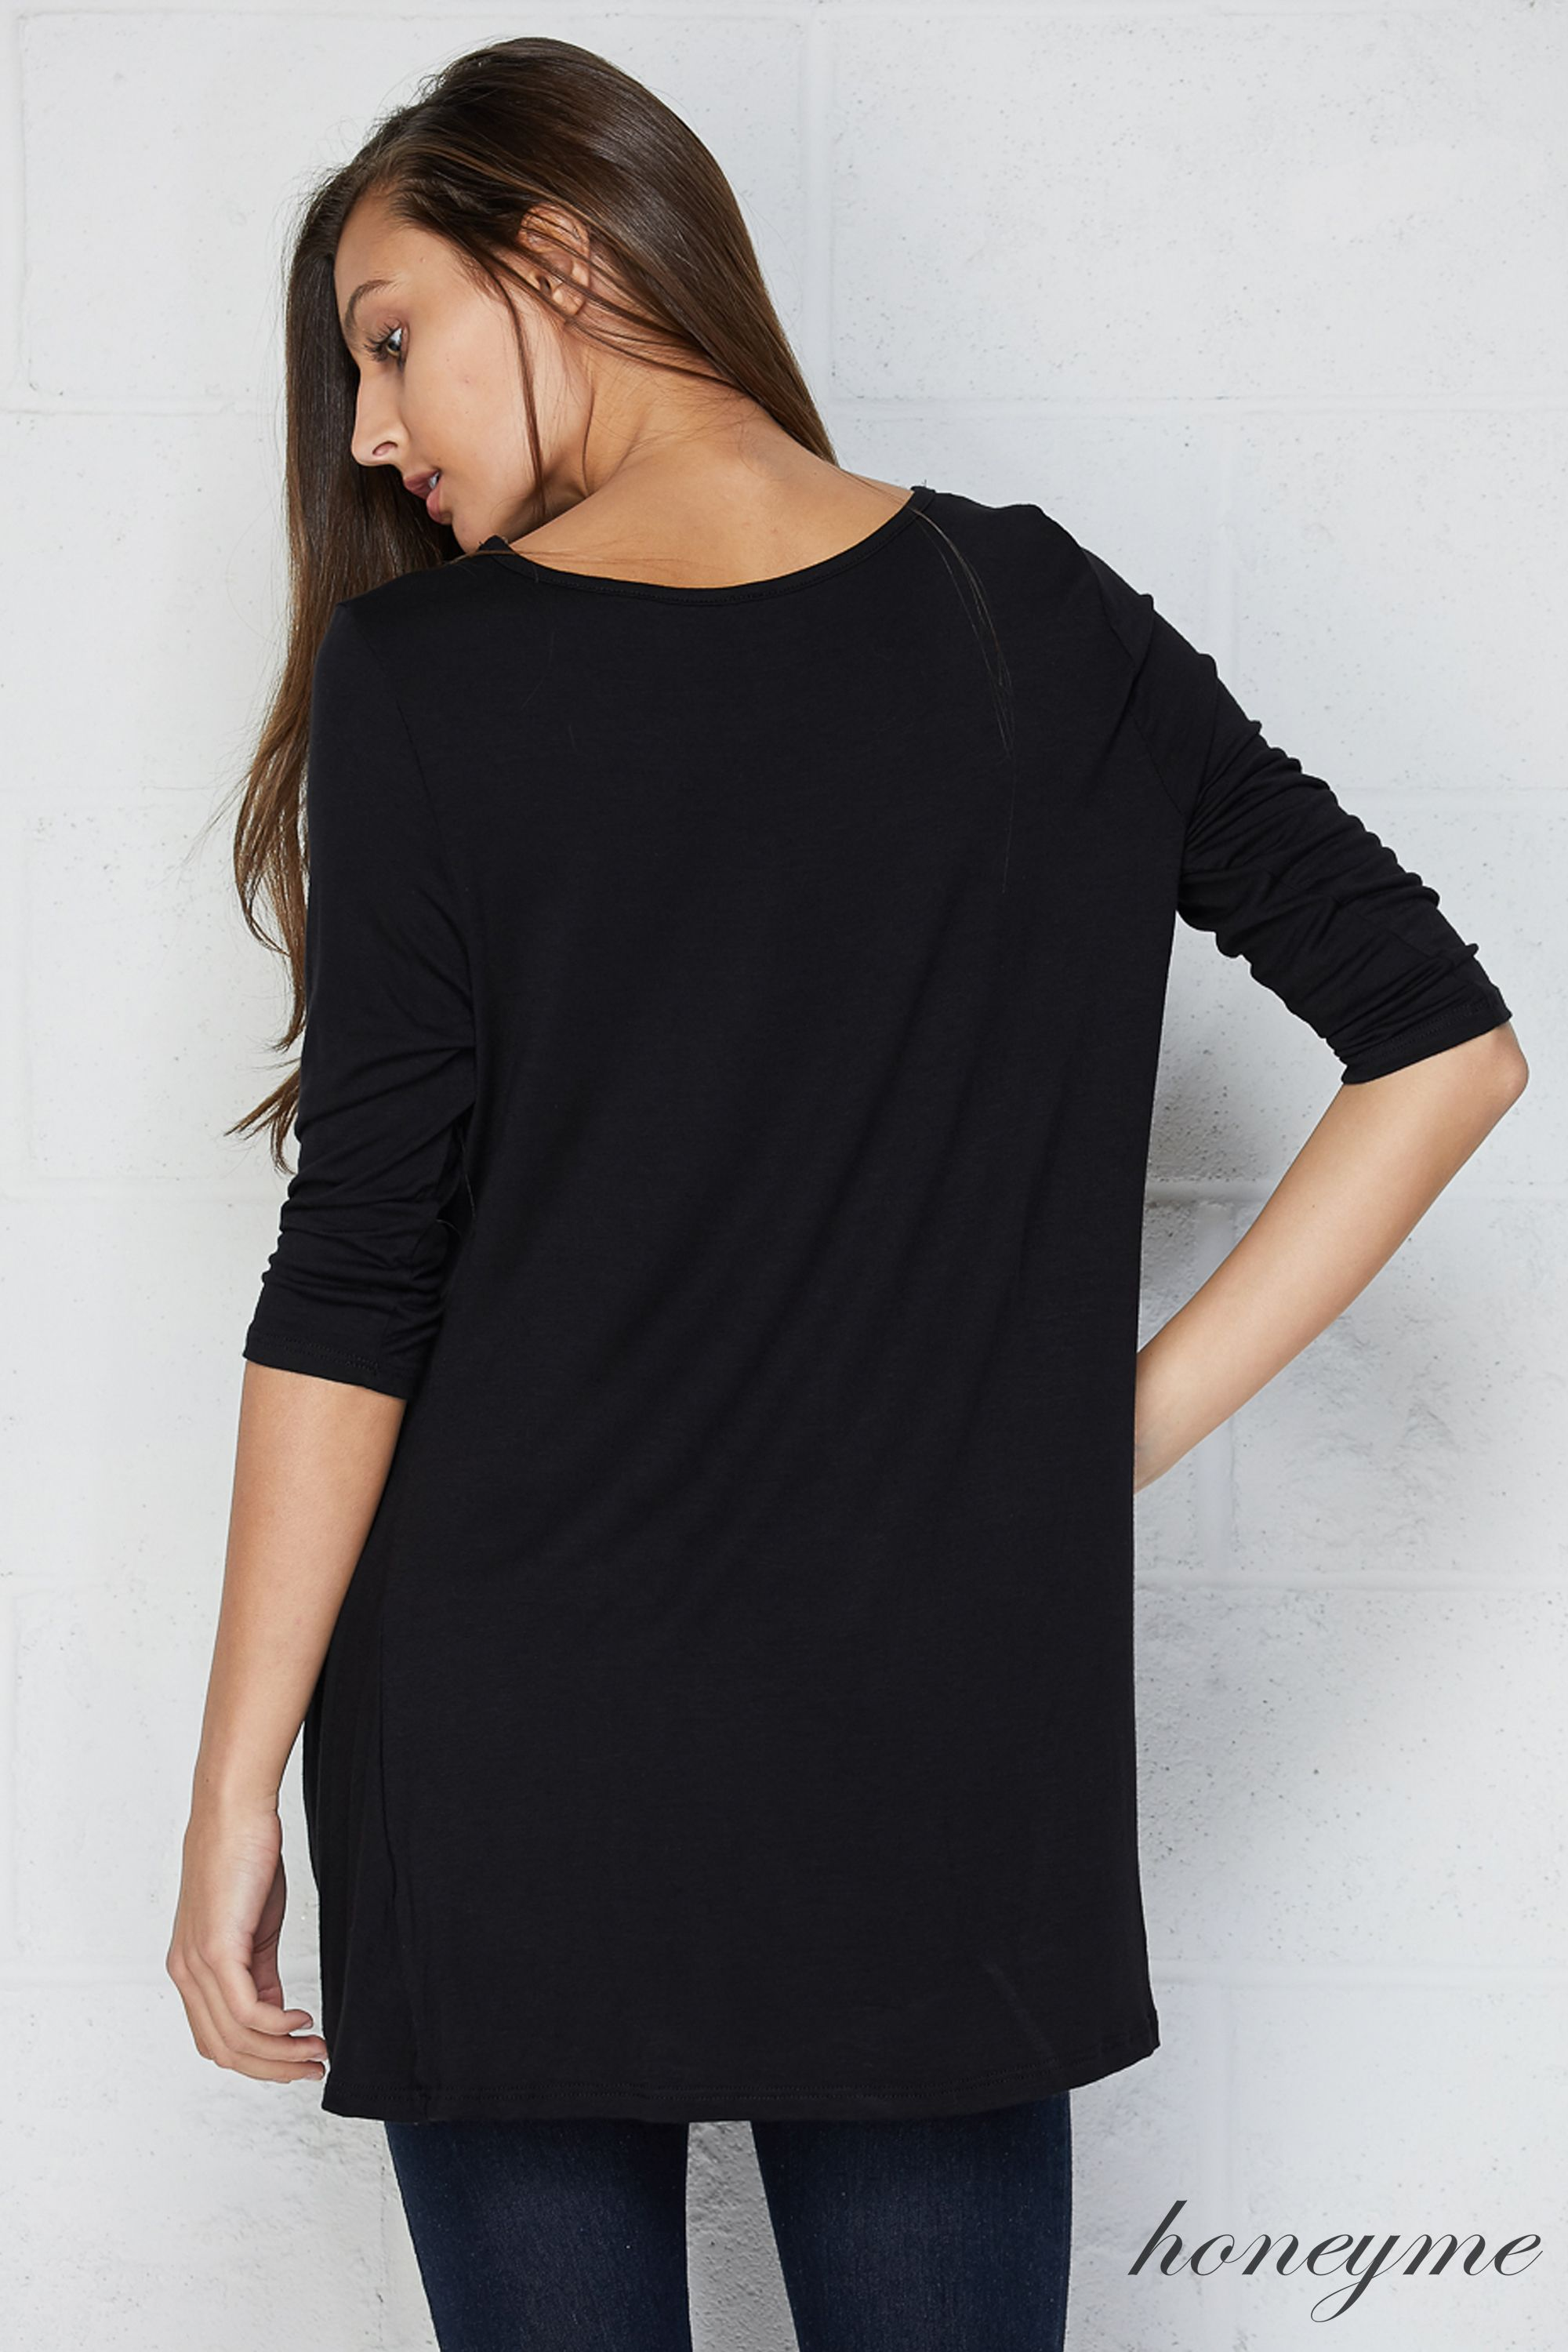 Honeyme Clothing USA Knot High-Low Top - Black Plus Size - Curvy